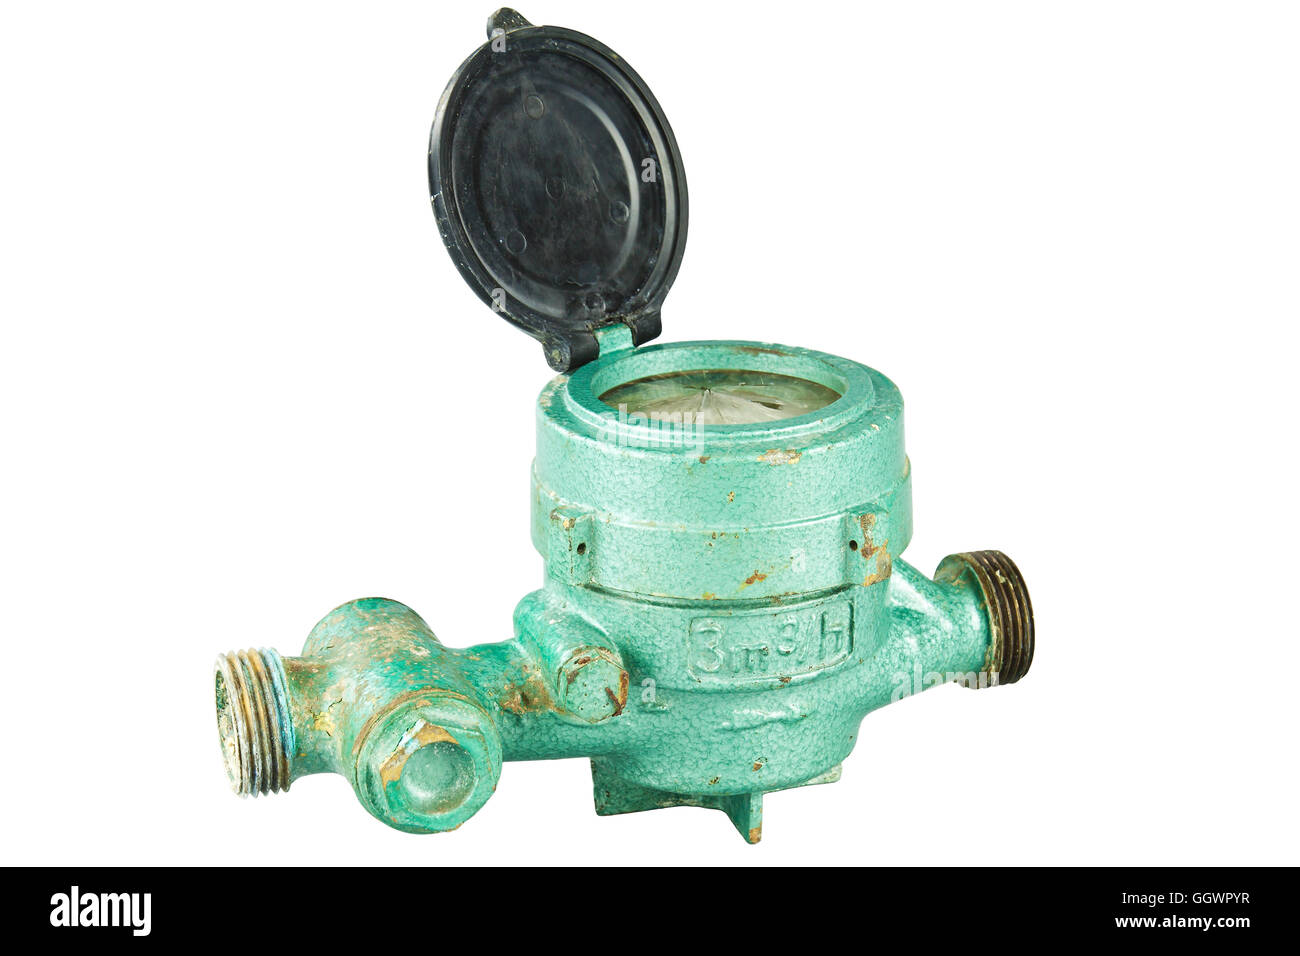 Old water meter isolated on white background - Stock Image